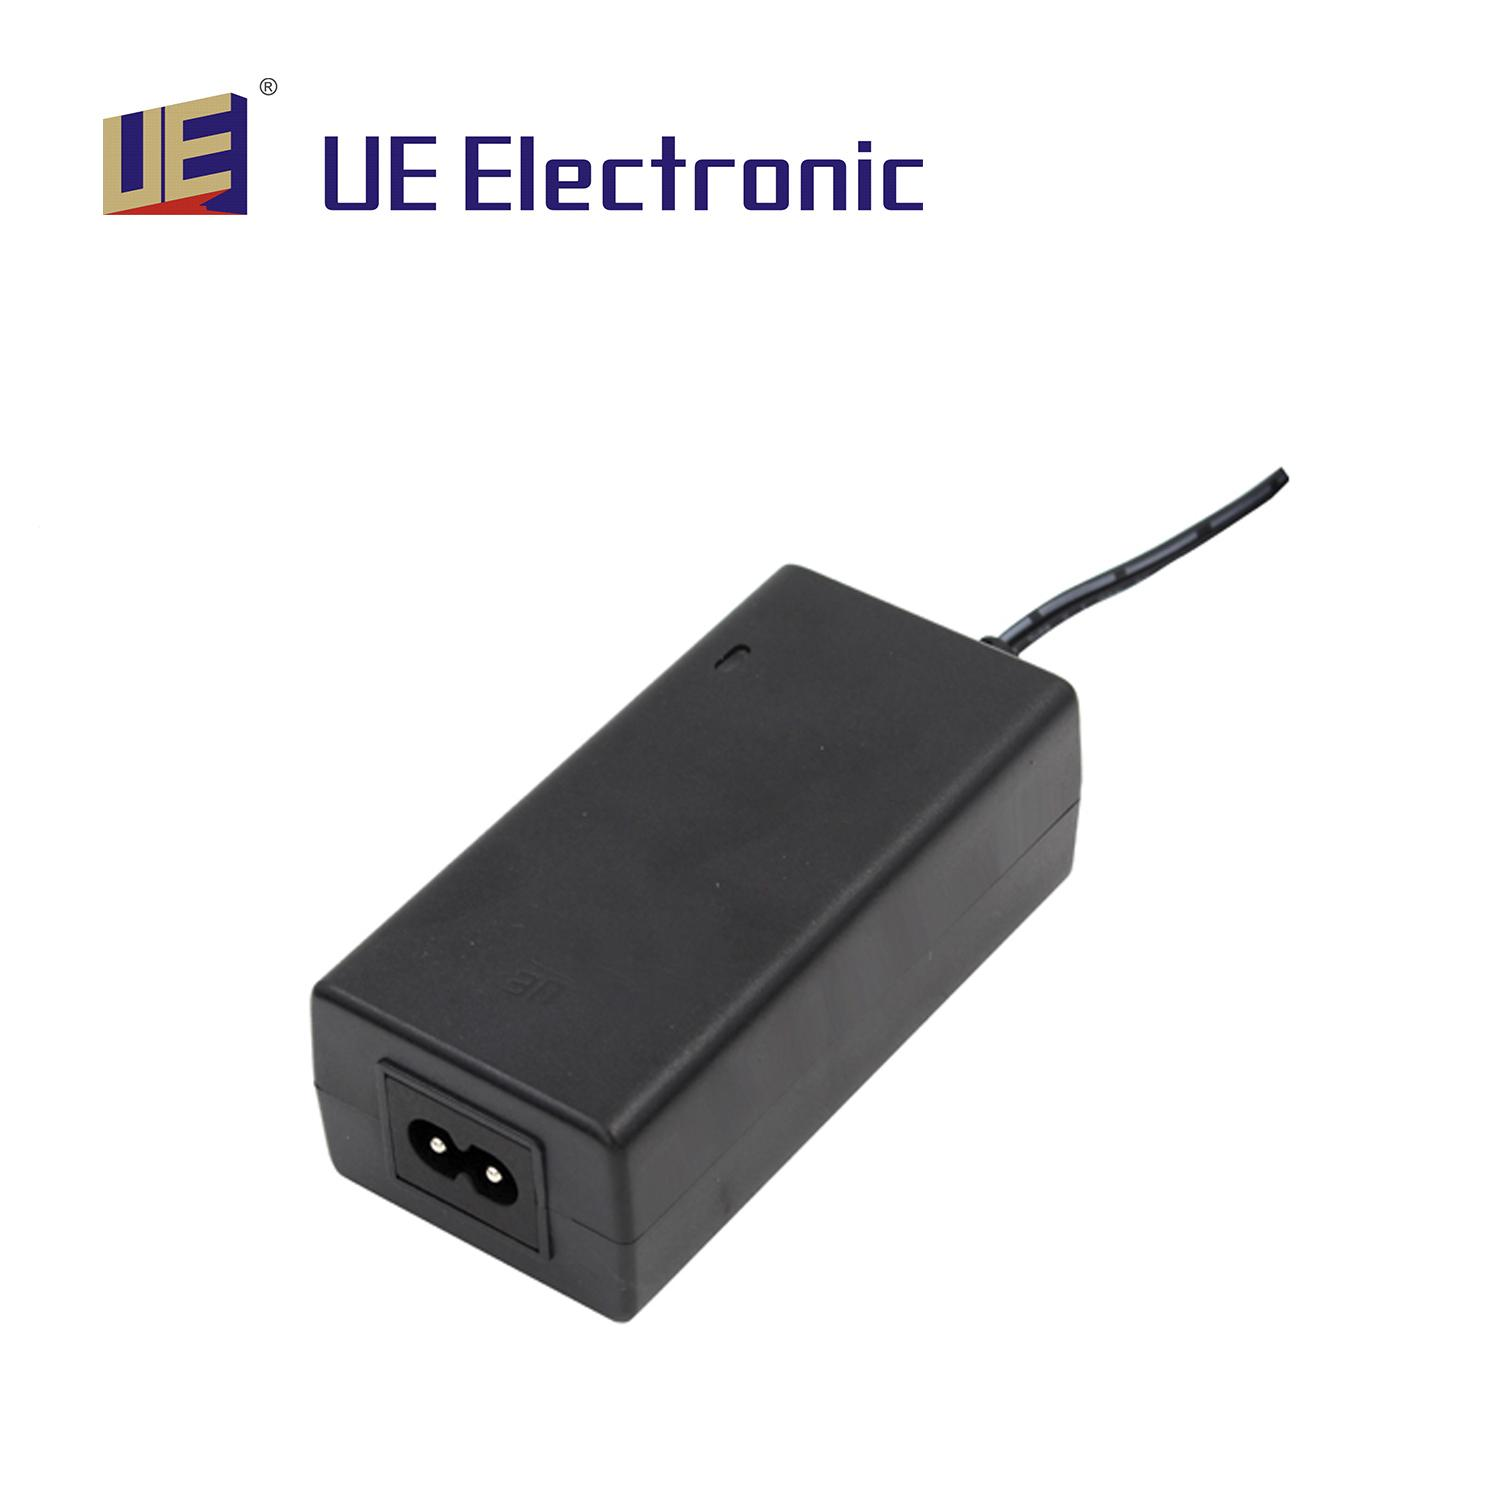 UE Electronic Desktop 36W medical power adaptor 2MOPP input to output isolation